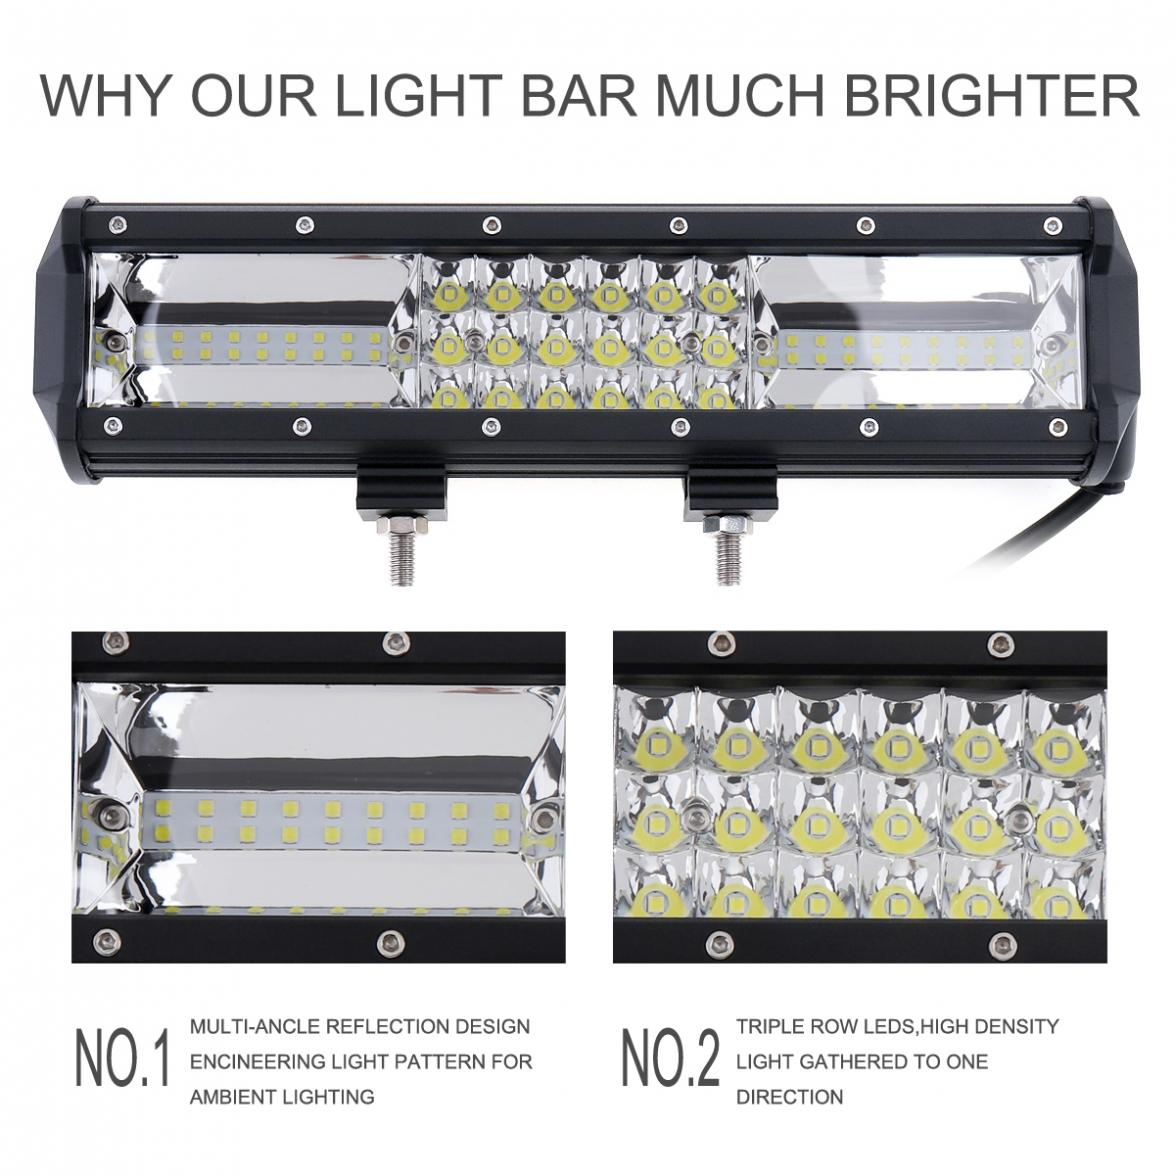 7D 12 Inch 324W Auto Car DRL LED Work Driving Light Bar Triple Row Spot Flood Combo Offroad Light Lamp for SUV Truck ATV tripcraft promotion 20 inch 60w crees led single row work light bar spot flood combo offroad driving lamp suv atv 10v 30v